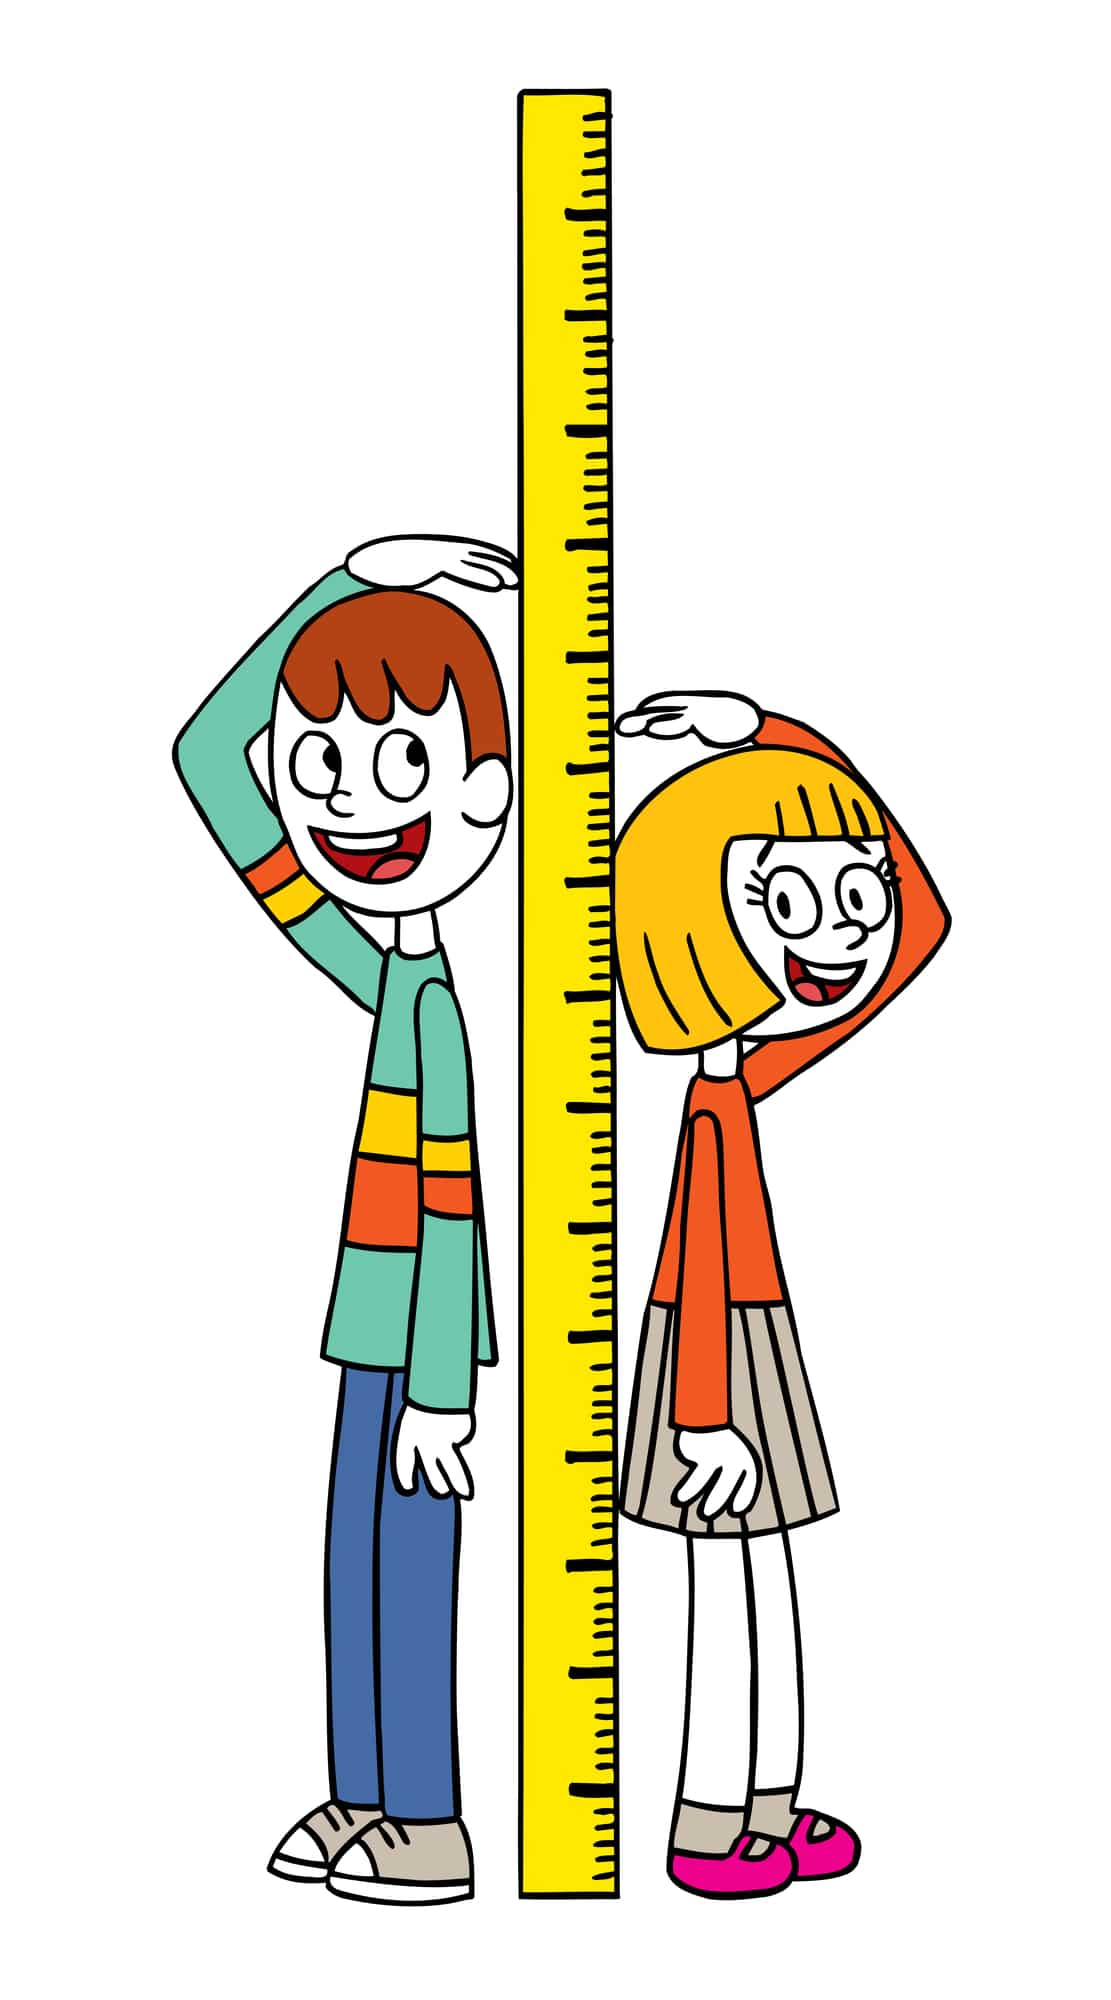 Measuring height is part of the experiment